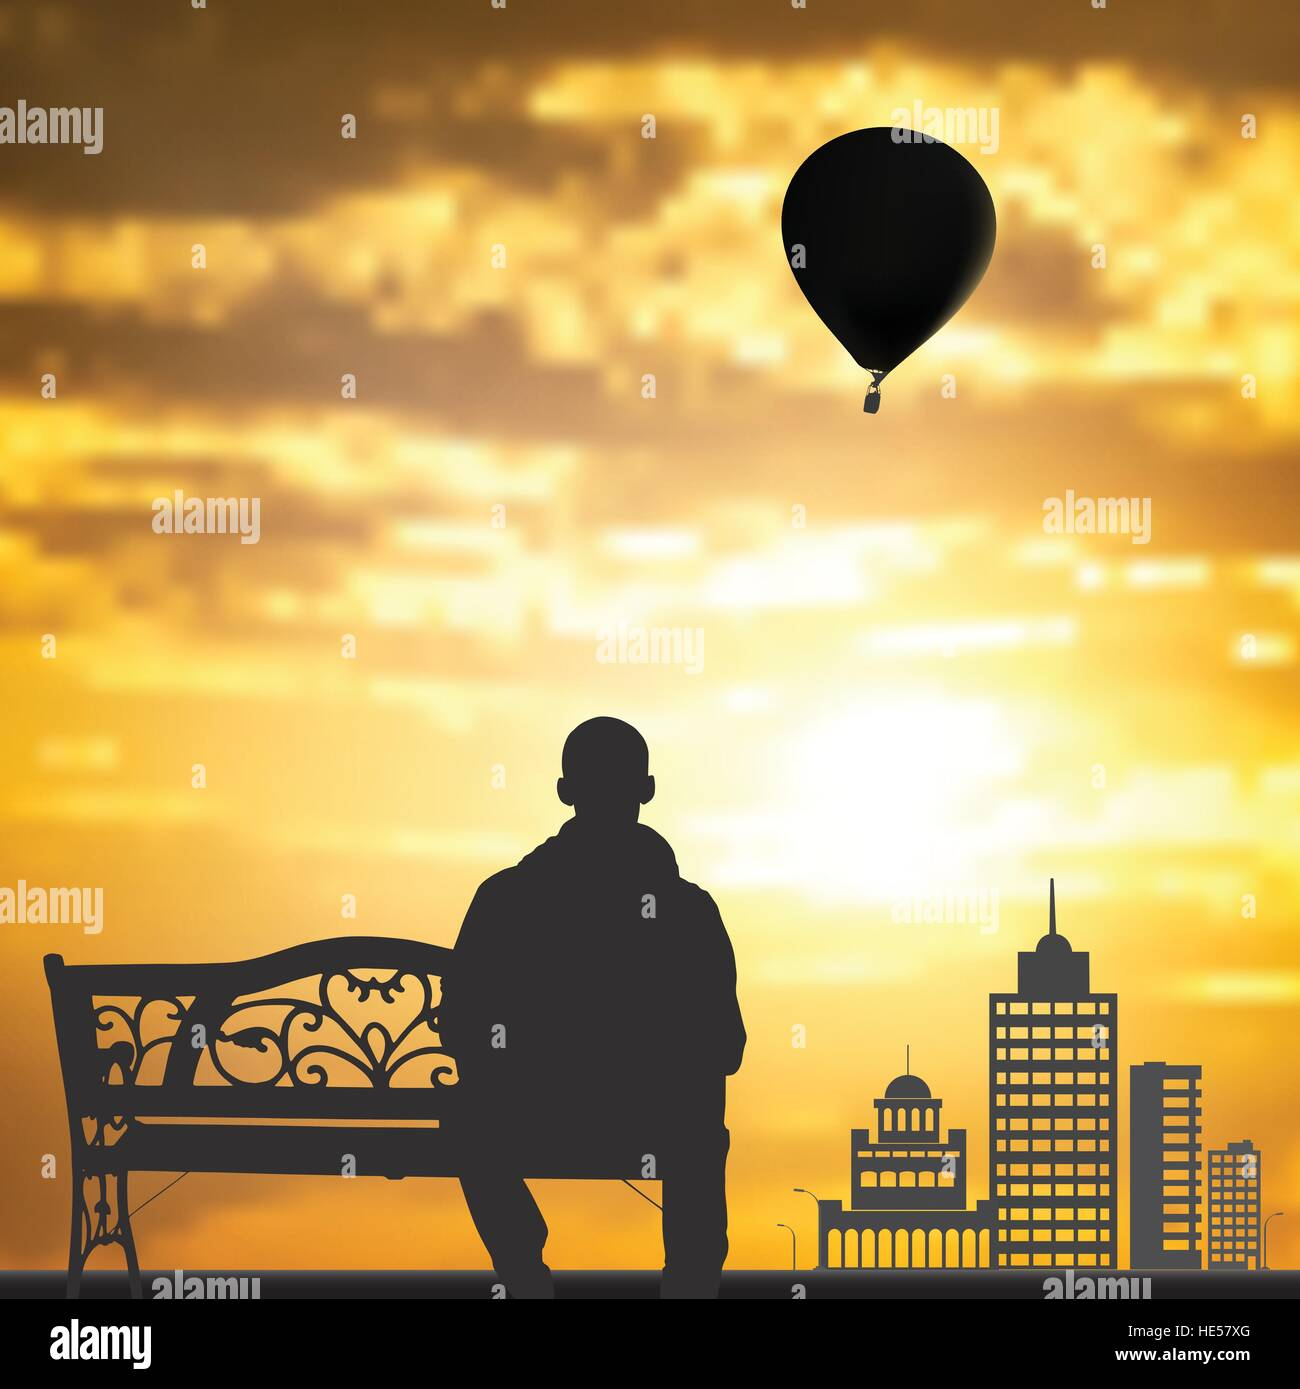 Men in the on a bench to enjoy the sunset.Silhouettes of skyscrapers of larger cities on the horizon at sunset. - Stock Vector